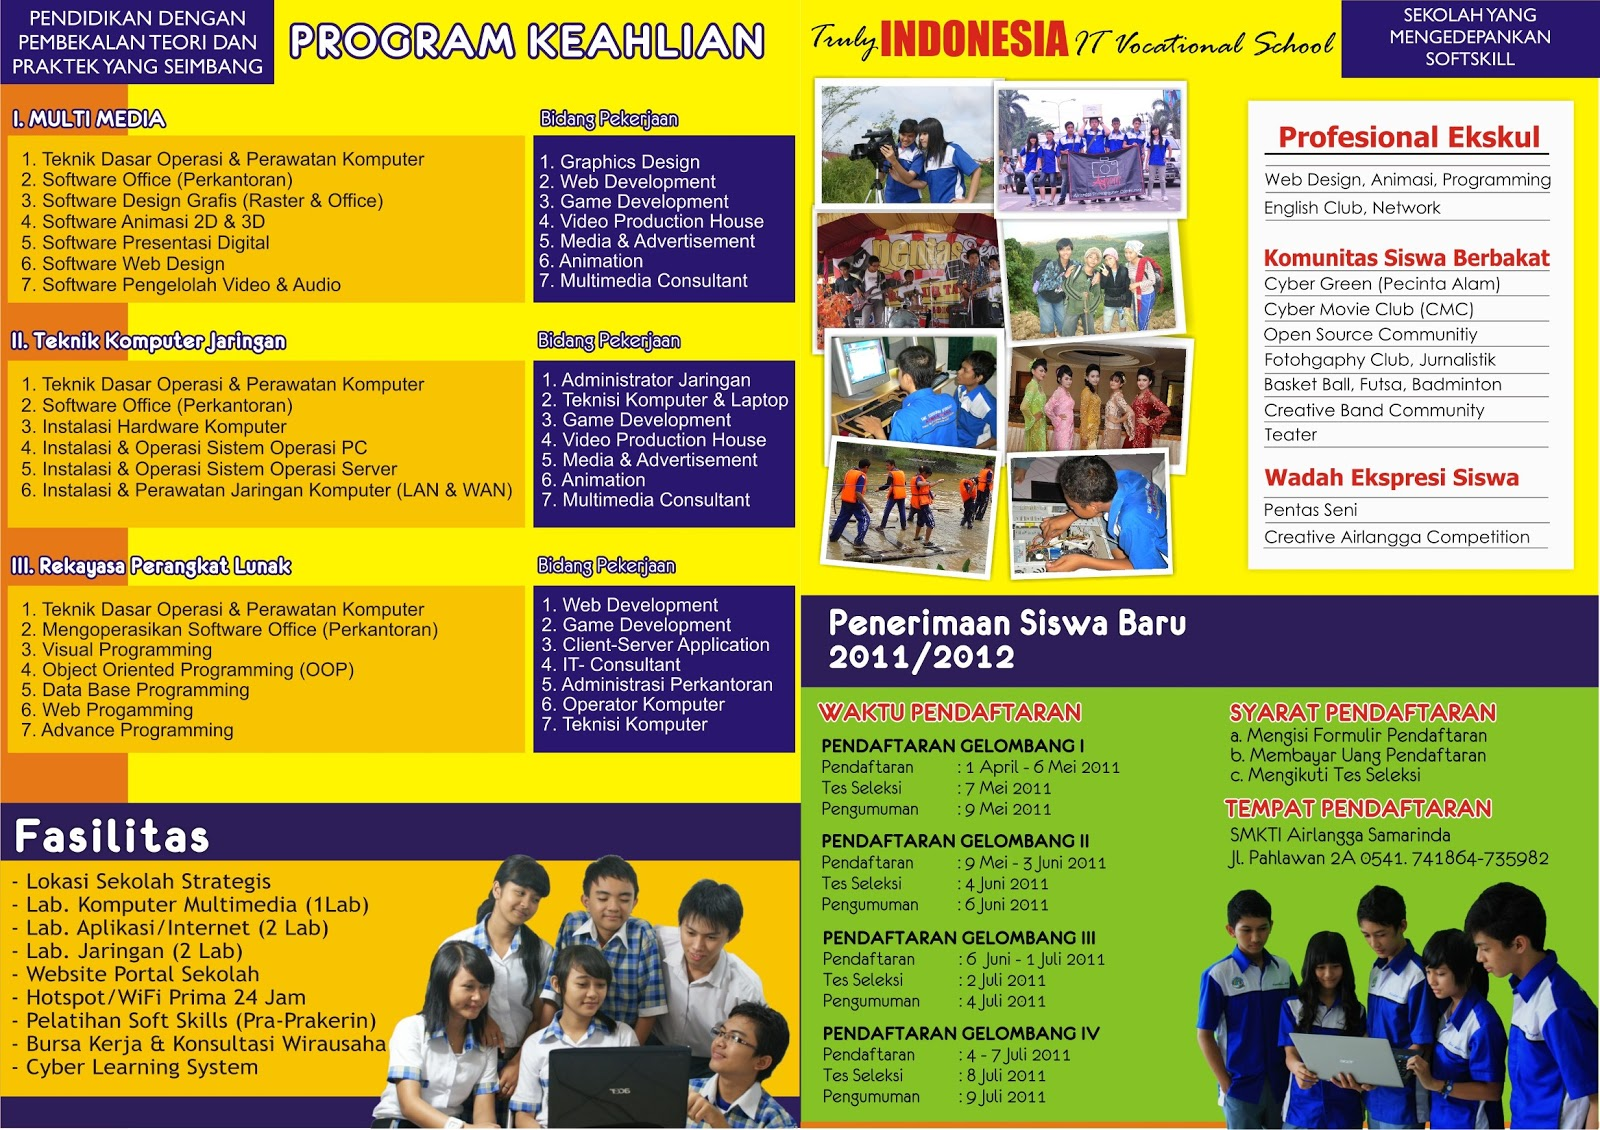 Download Brosur PSB 2011/2012 SMK TI Airlangga